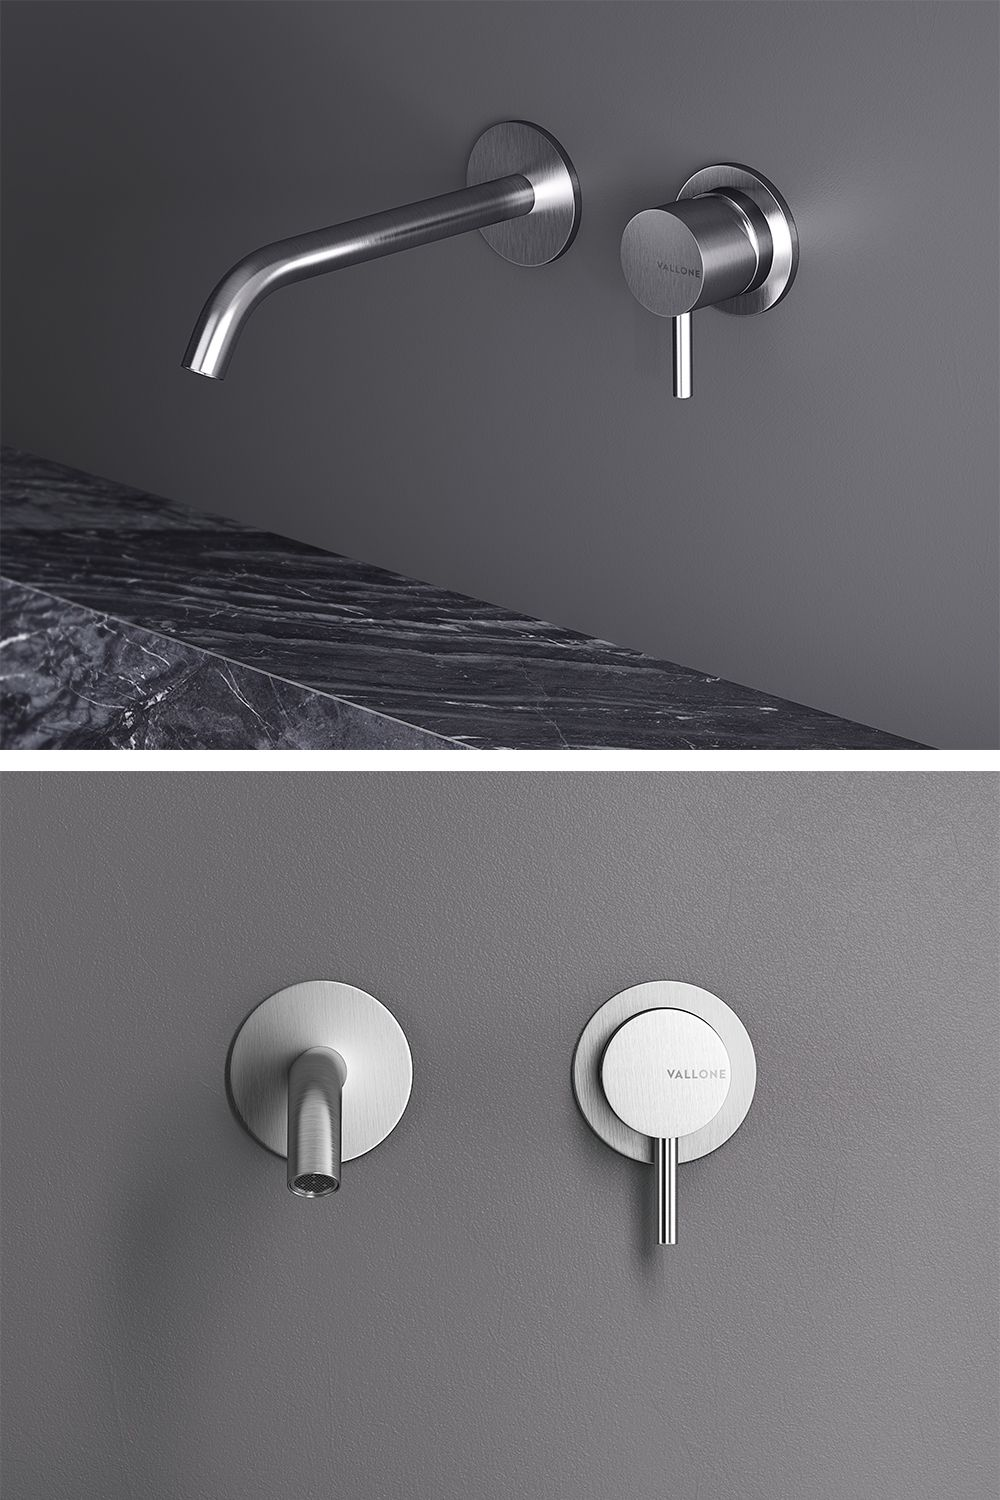 Como By Vallone Design Taps Made Of High Quality Stainless Steel Tap Collection Handmade In Italy Www Vallone De Bathroom Bathde Haus Bauen Badezimmer Haus